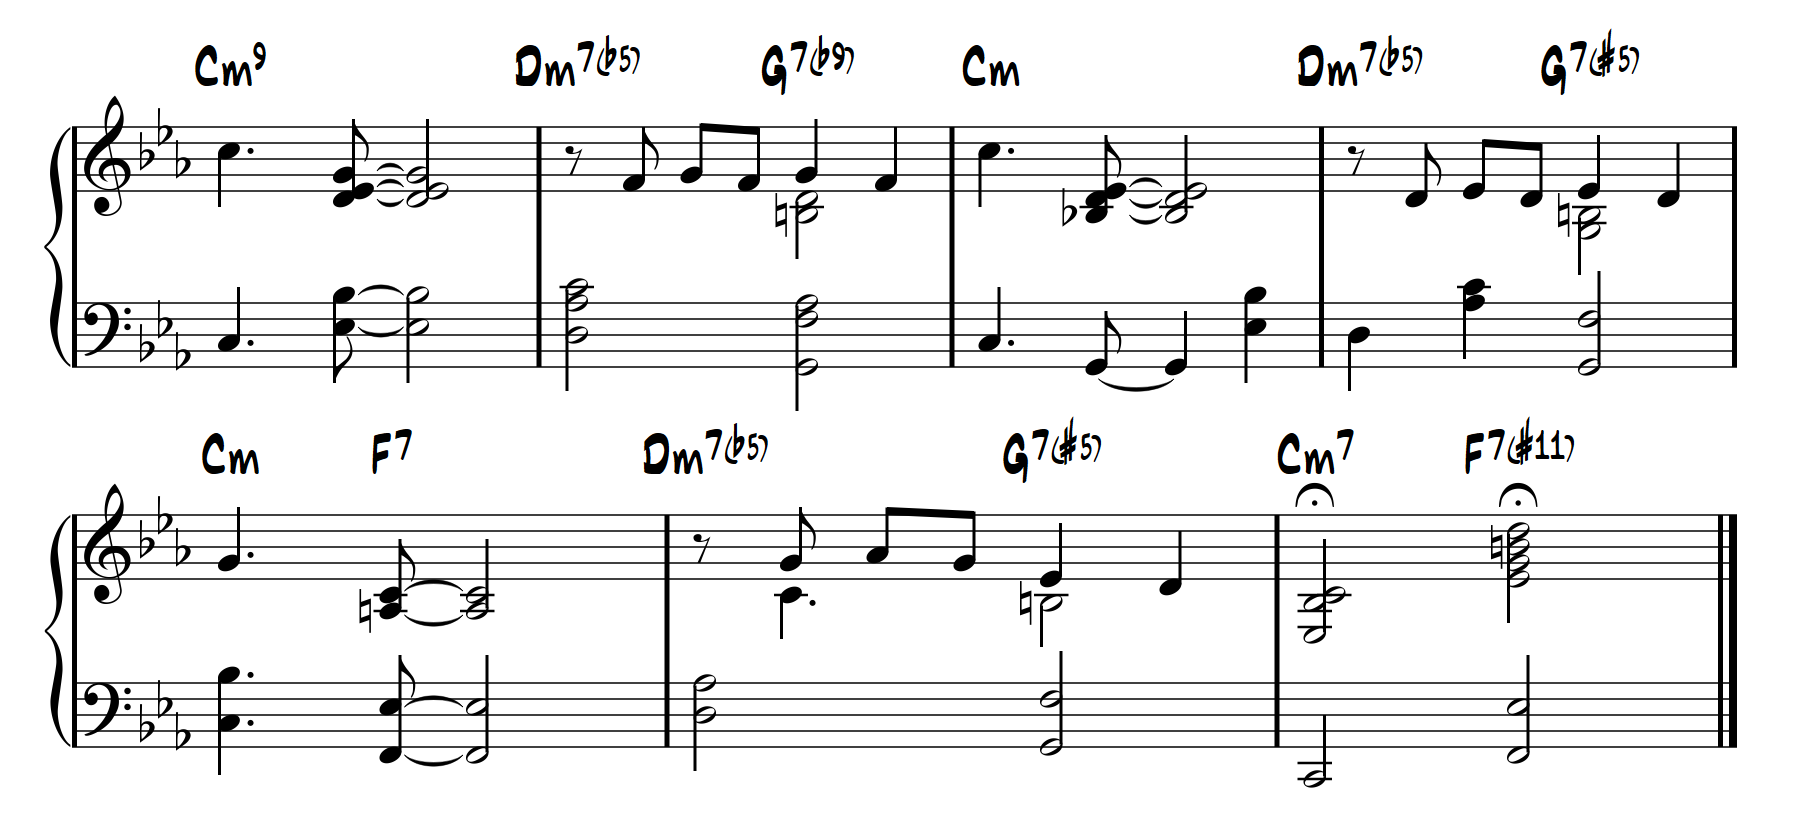 LearnJazzPiano.com - Softly as in a morning sunrise, lesson figure 7